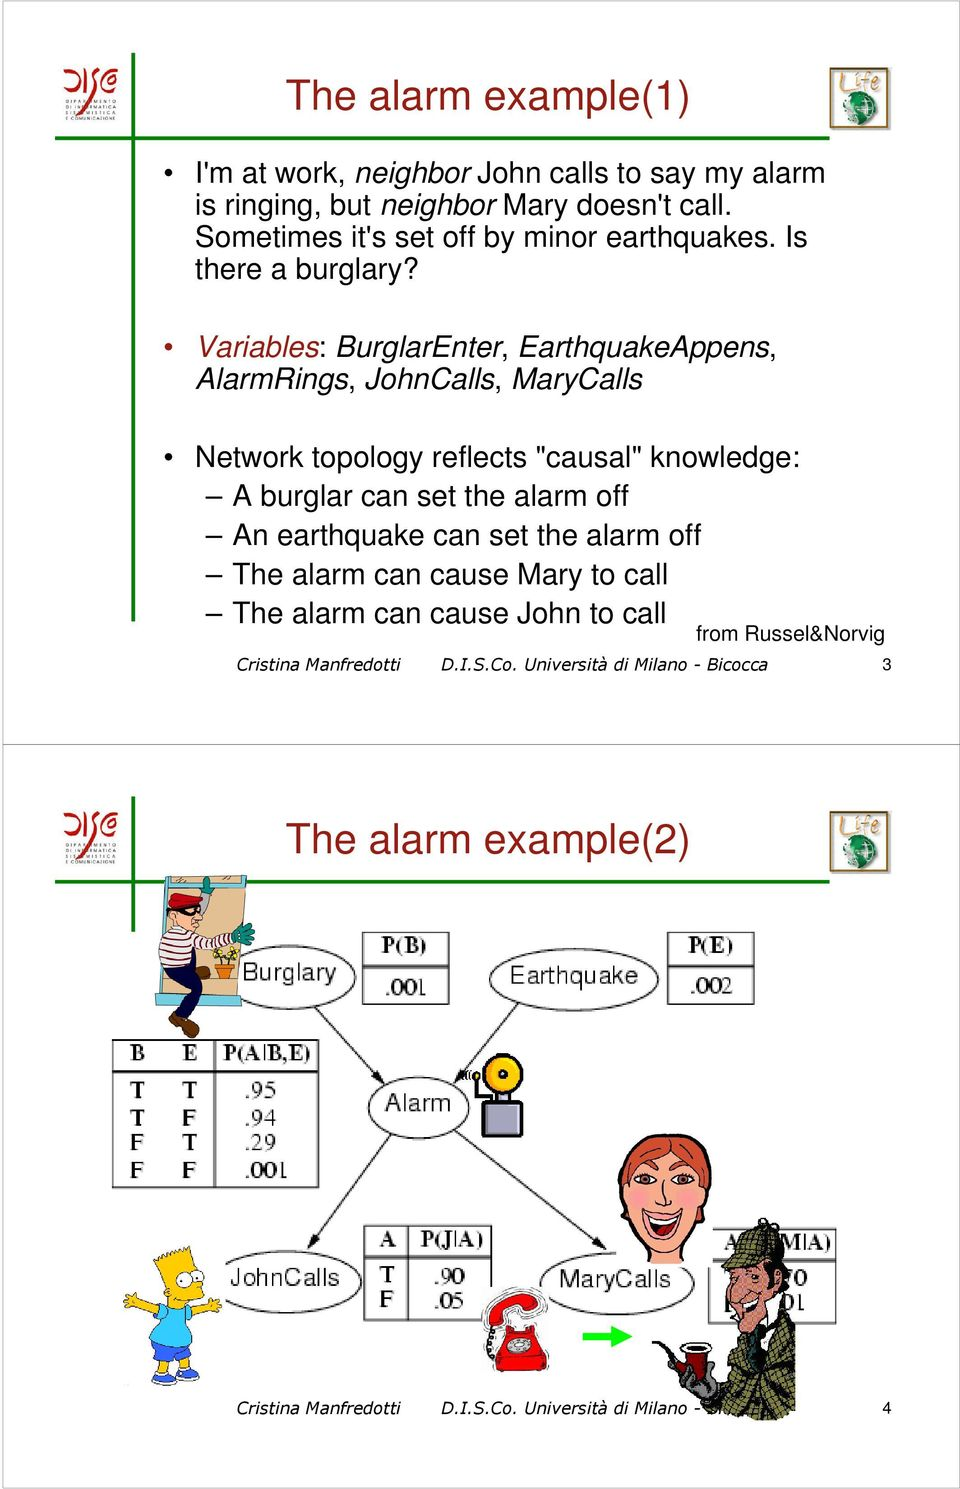 "Variables: BurglarEnter, EarthquakeAppens, AlarmRings, JohnCalls, MaryCalls Network topology reflects ""causal"" knowledge: A burglar can set the alarm"